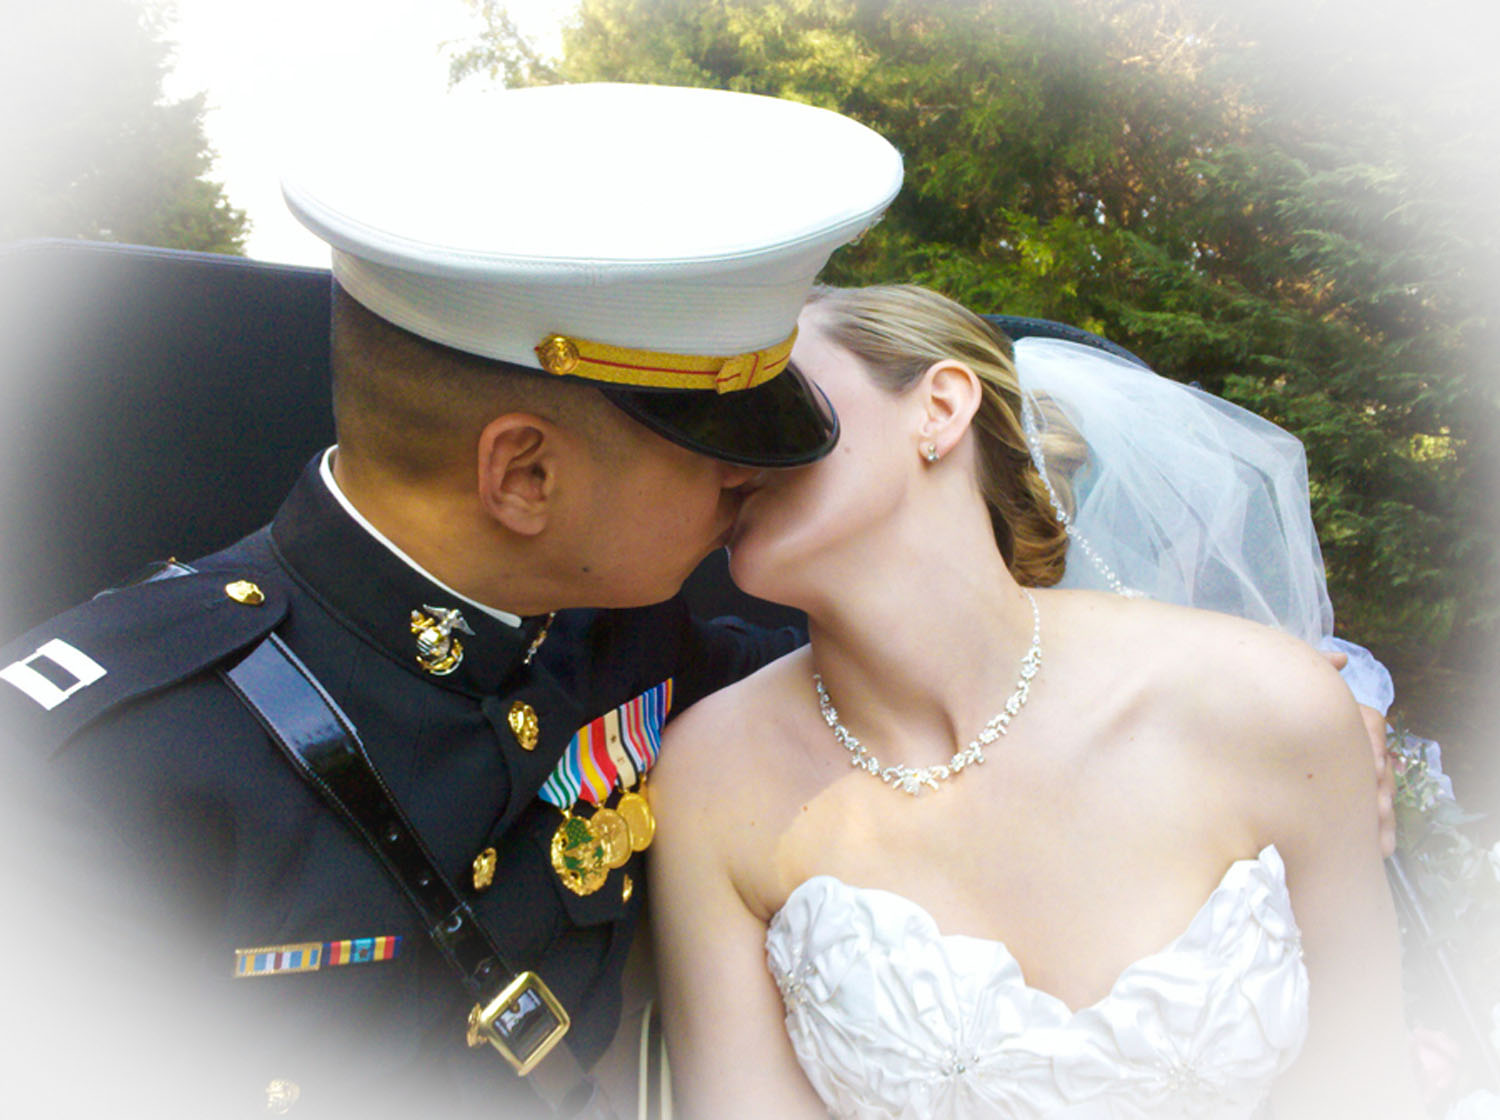 bride-and-groom-50-of-1-2